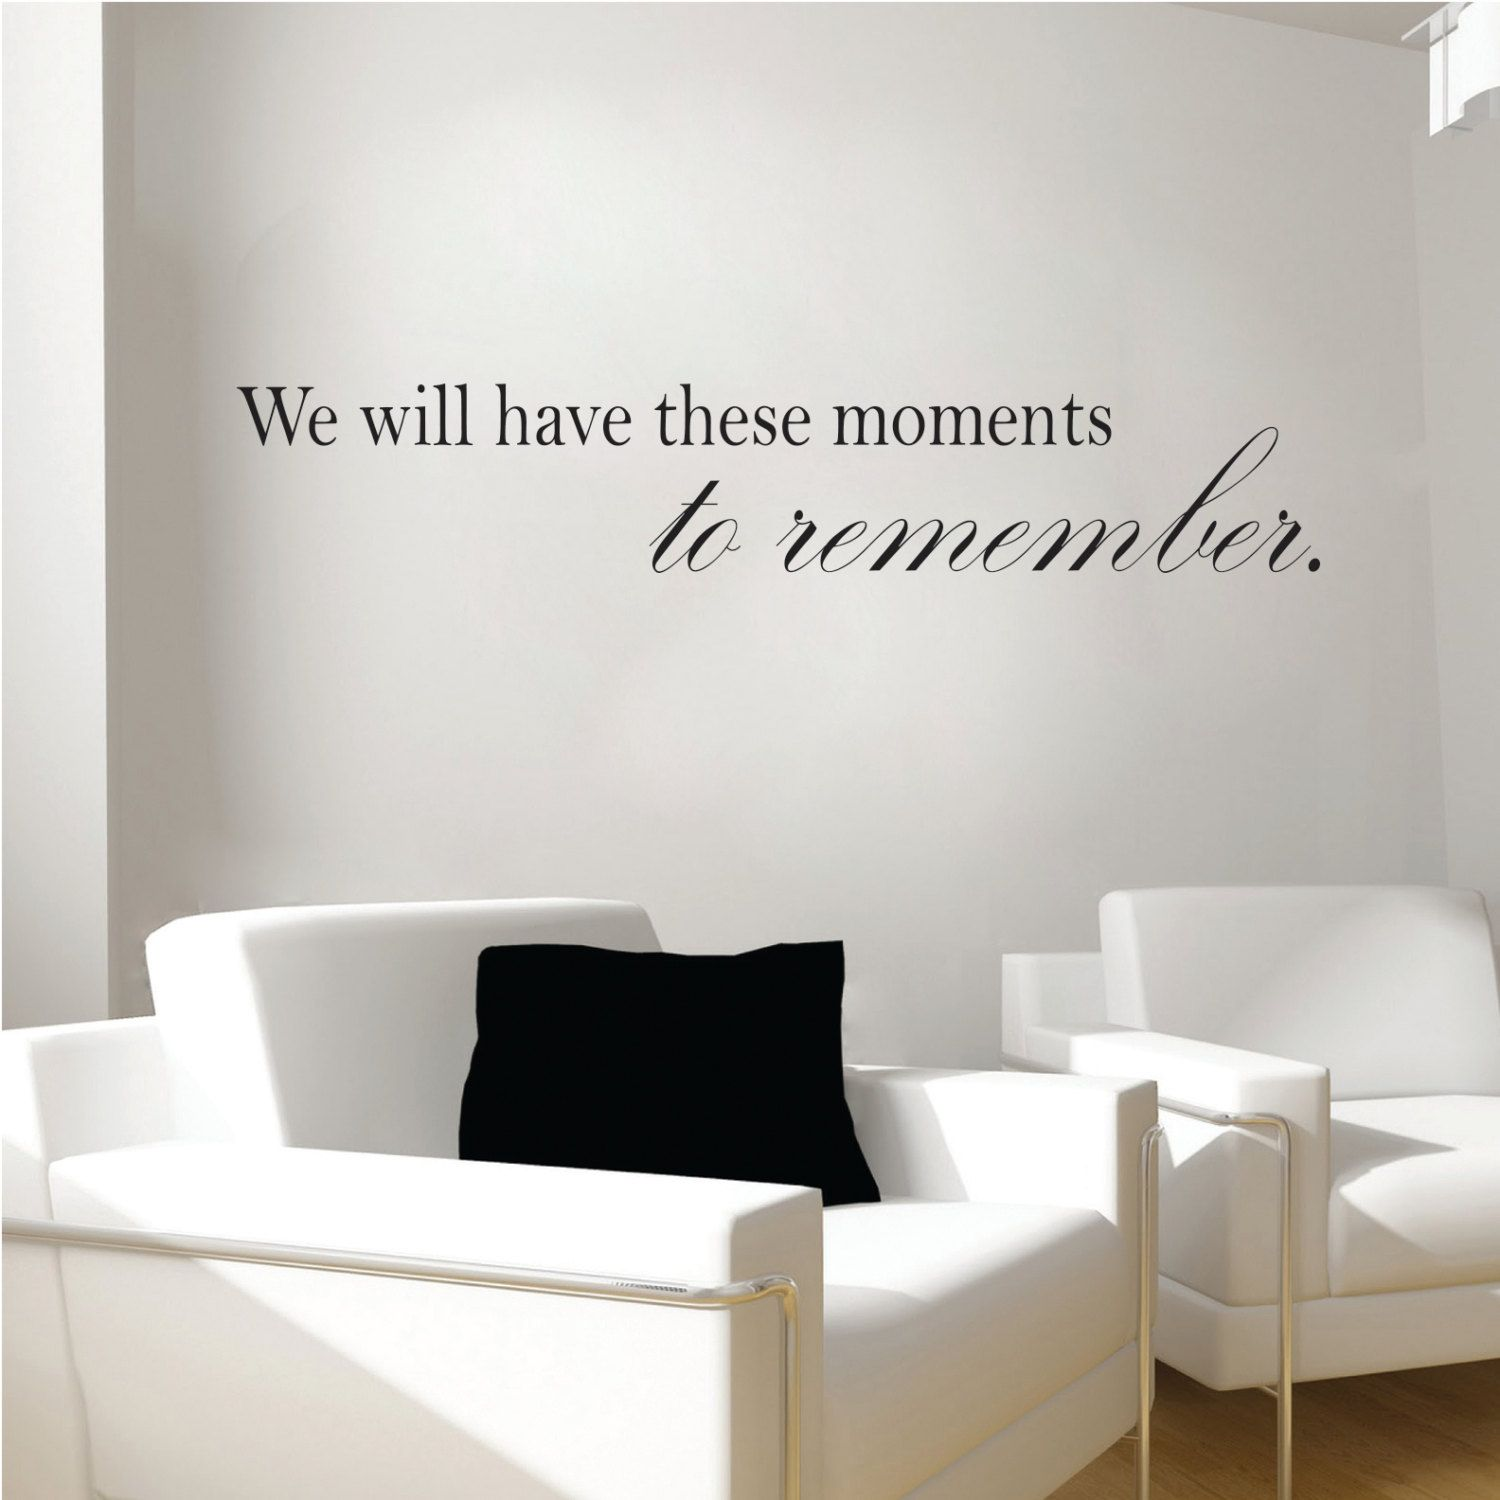 We Will Have These Moments To Remember Wall Decal Moments To - Vinyl decals for walls etsy